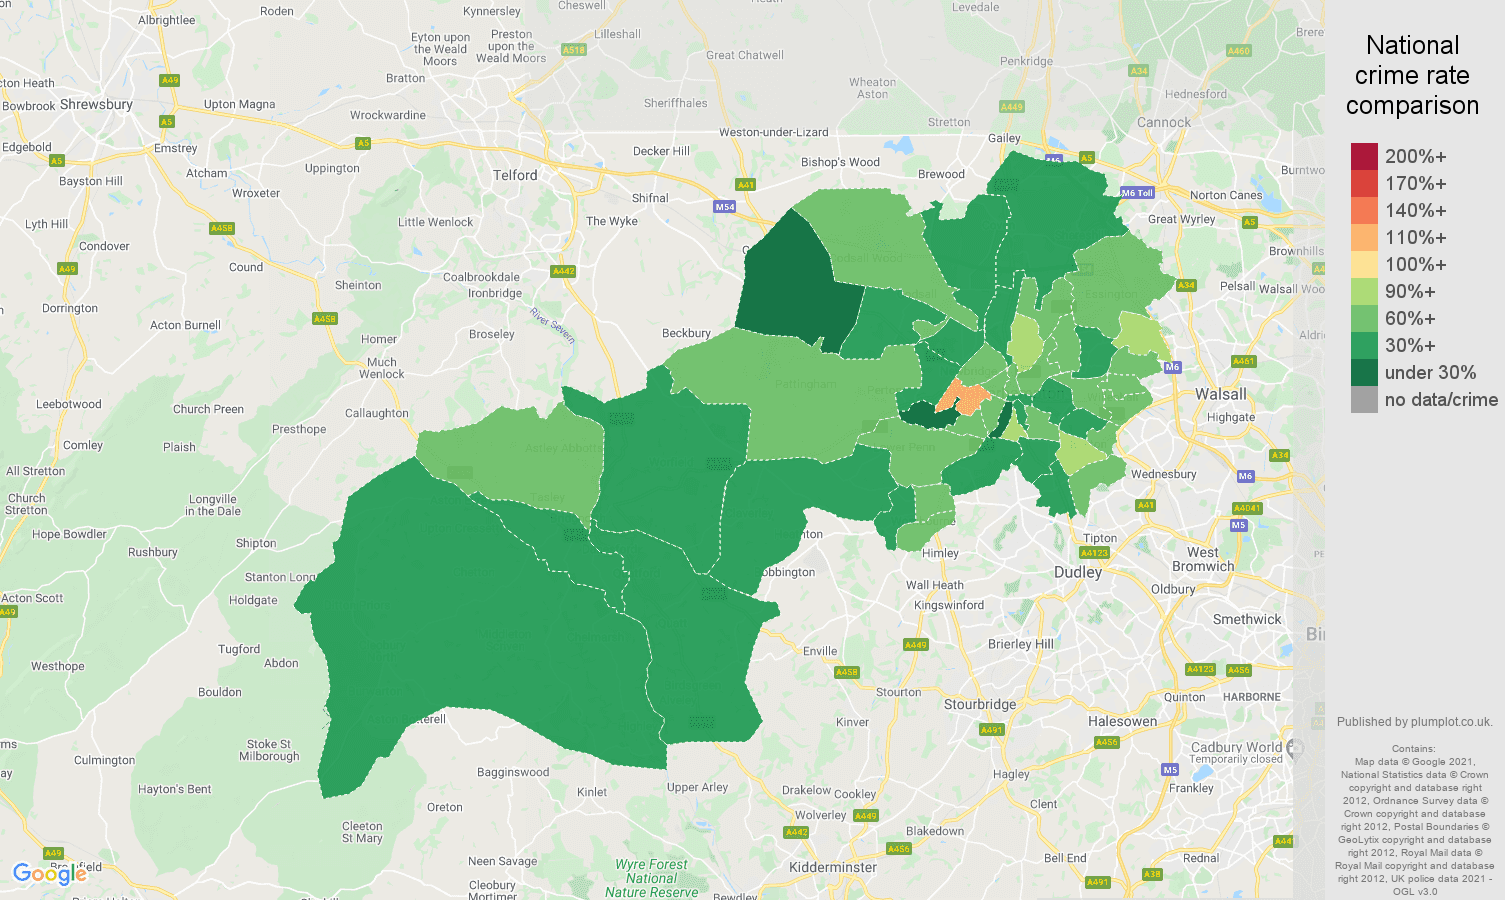 Wolverhampton antisocial behaviour crime rate comparison map